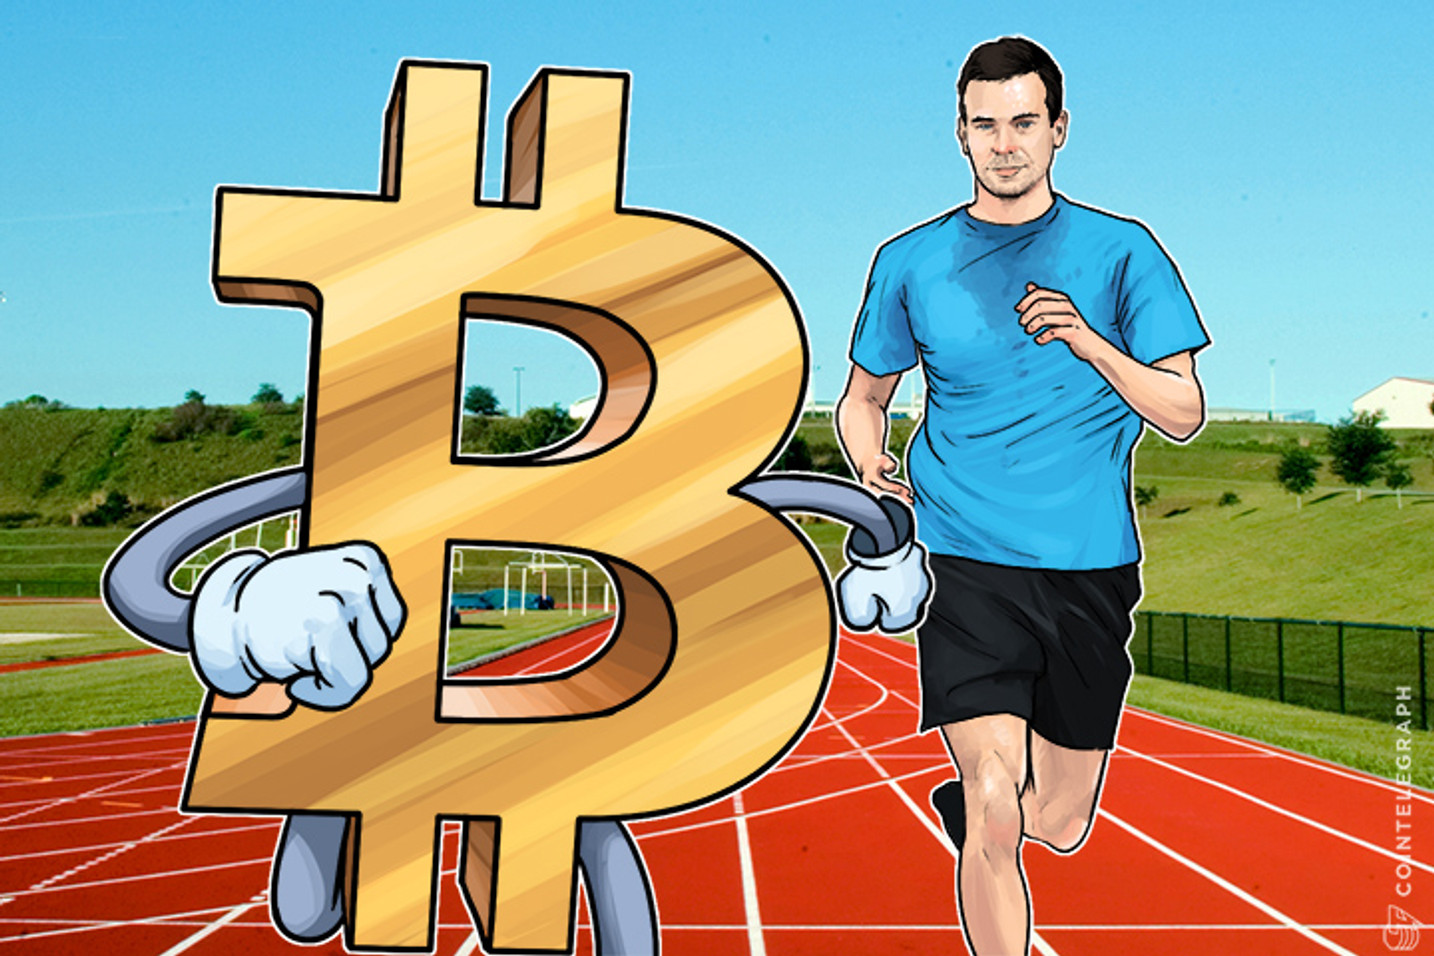 Bitcoin Valued at More Than Twitter Inc, Crosses $10Bn in Market Capitalization